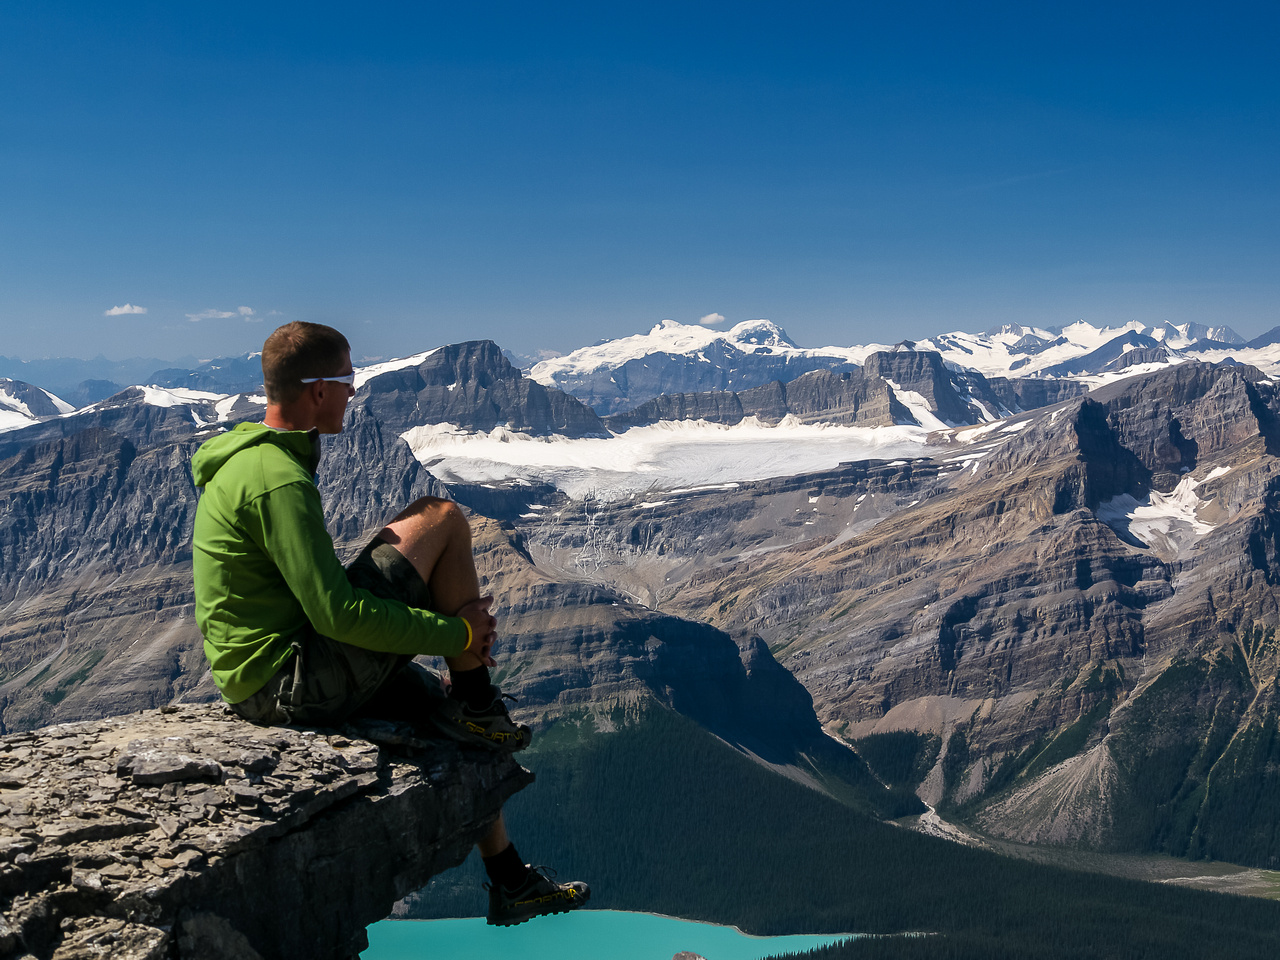 Vern chills out on an outcrop near the summit. Mistaya and Mummery provide amazing views.